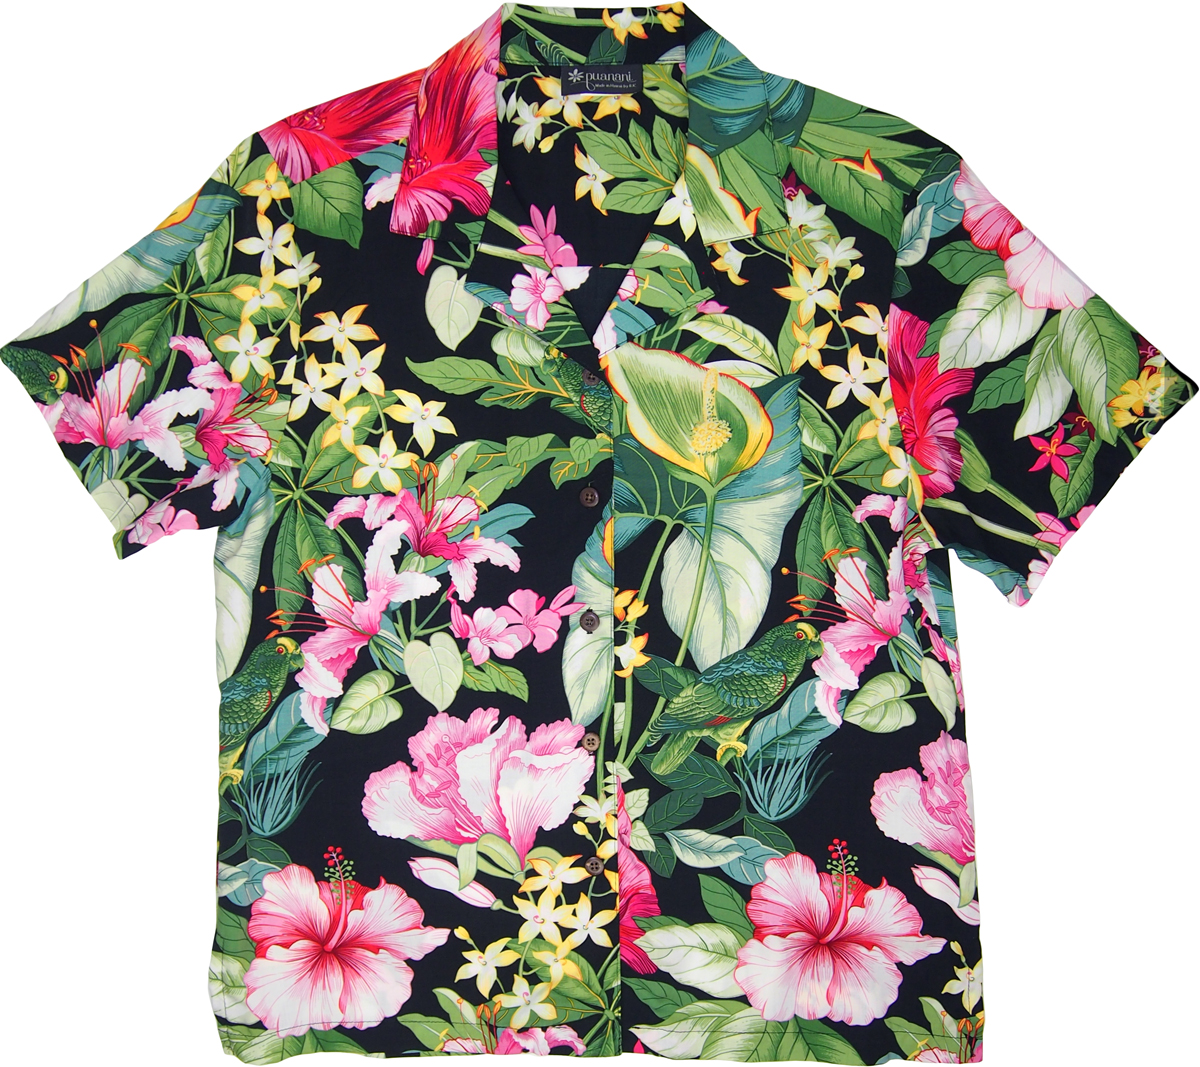 Hawaii Shirt The Best Thing To Wear To The Beach Carey Fashion